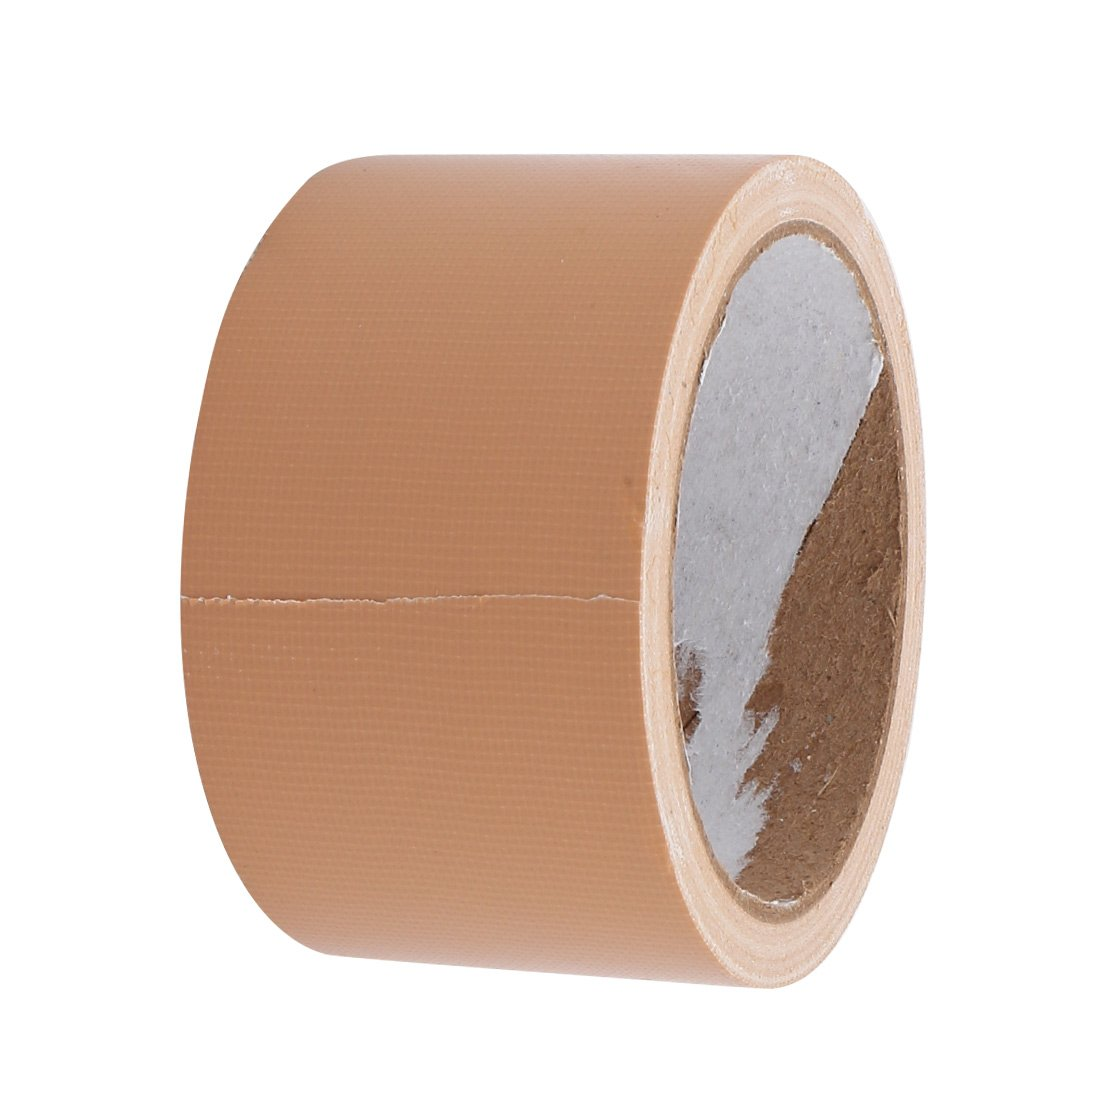 uxcell 55mm Width 10M Long Single Sided Safety Marking Carpet Tape Brown